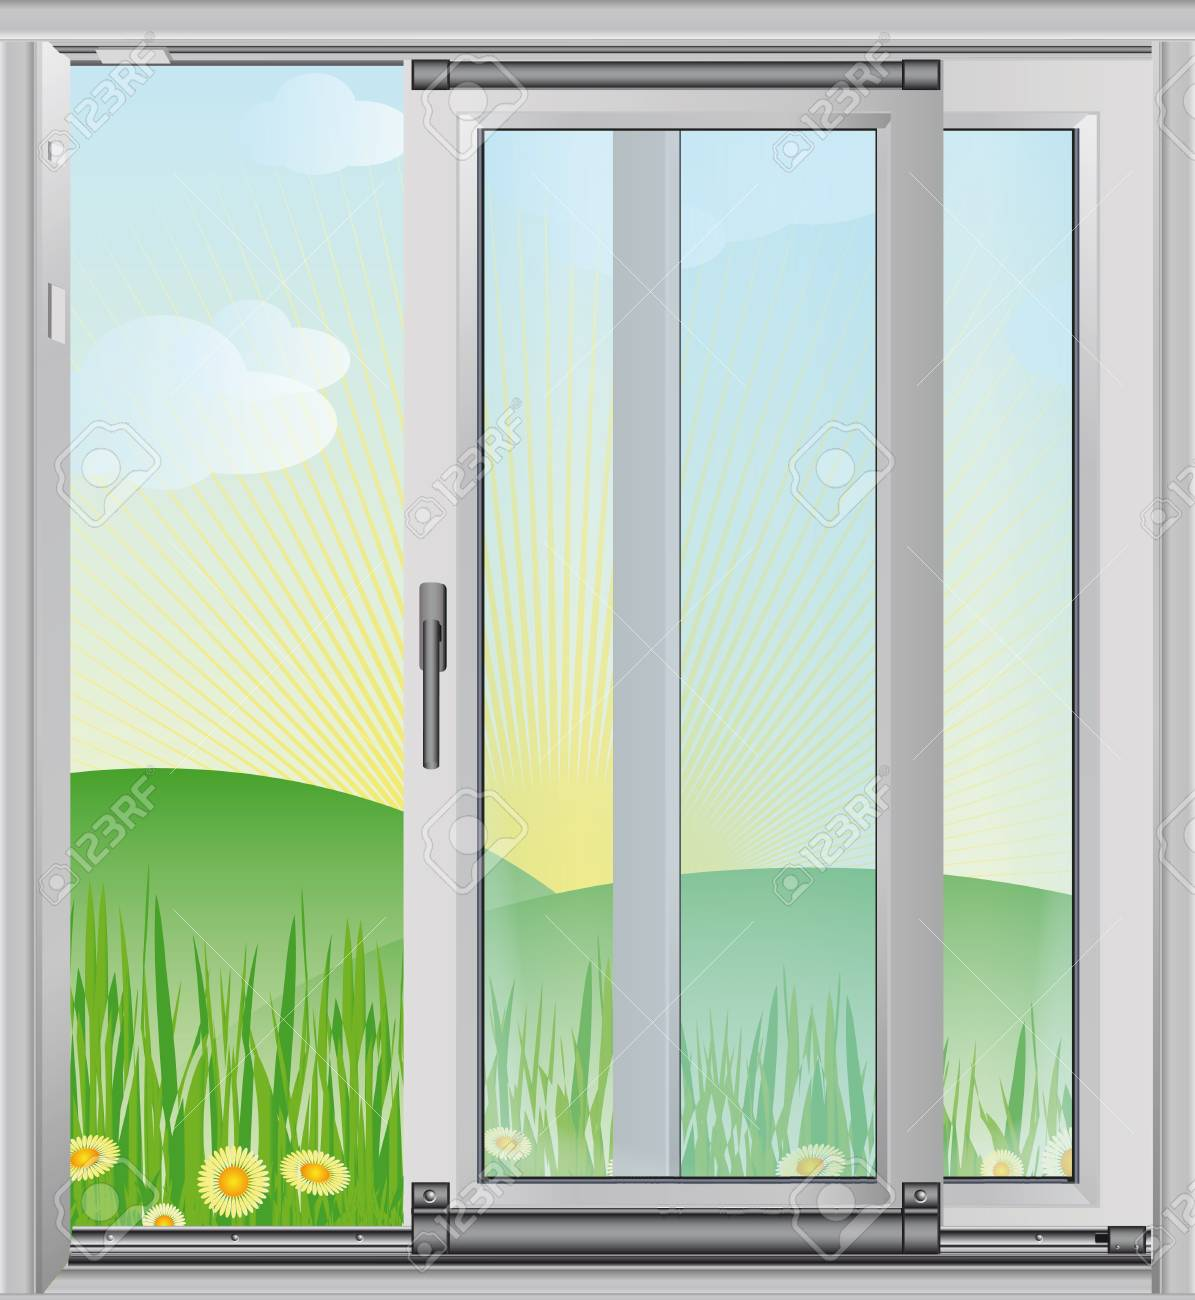 Spring scenery outside the window - vector illustration Stock Vector - 12924542